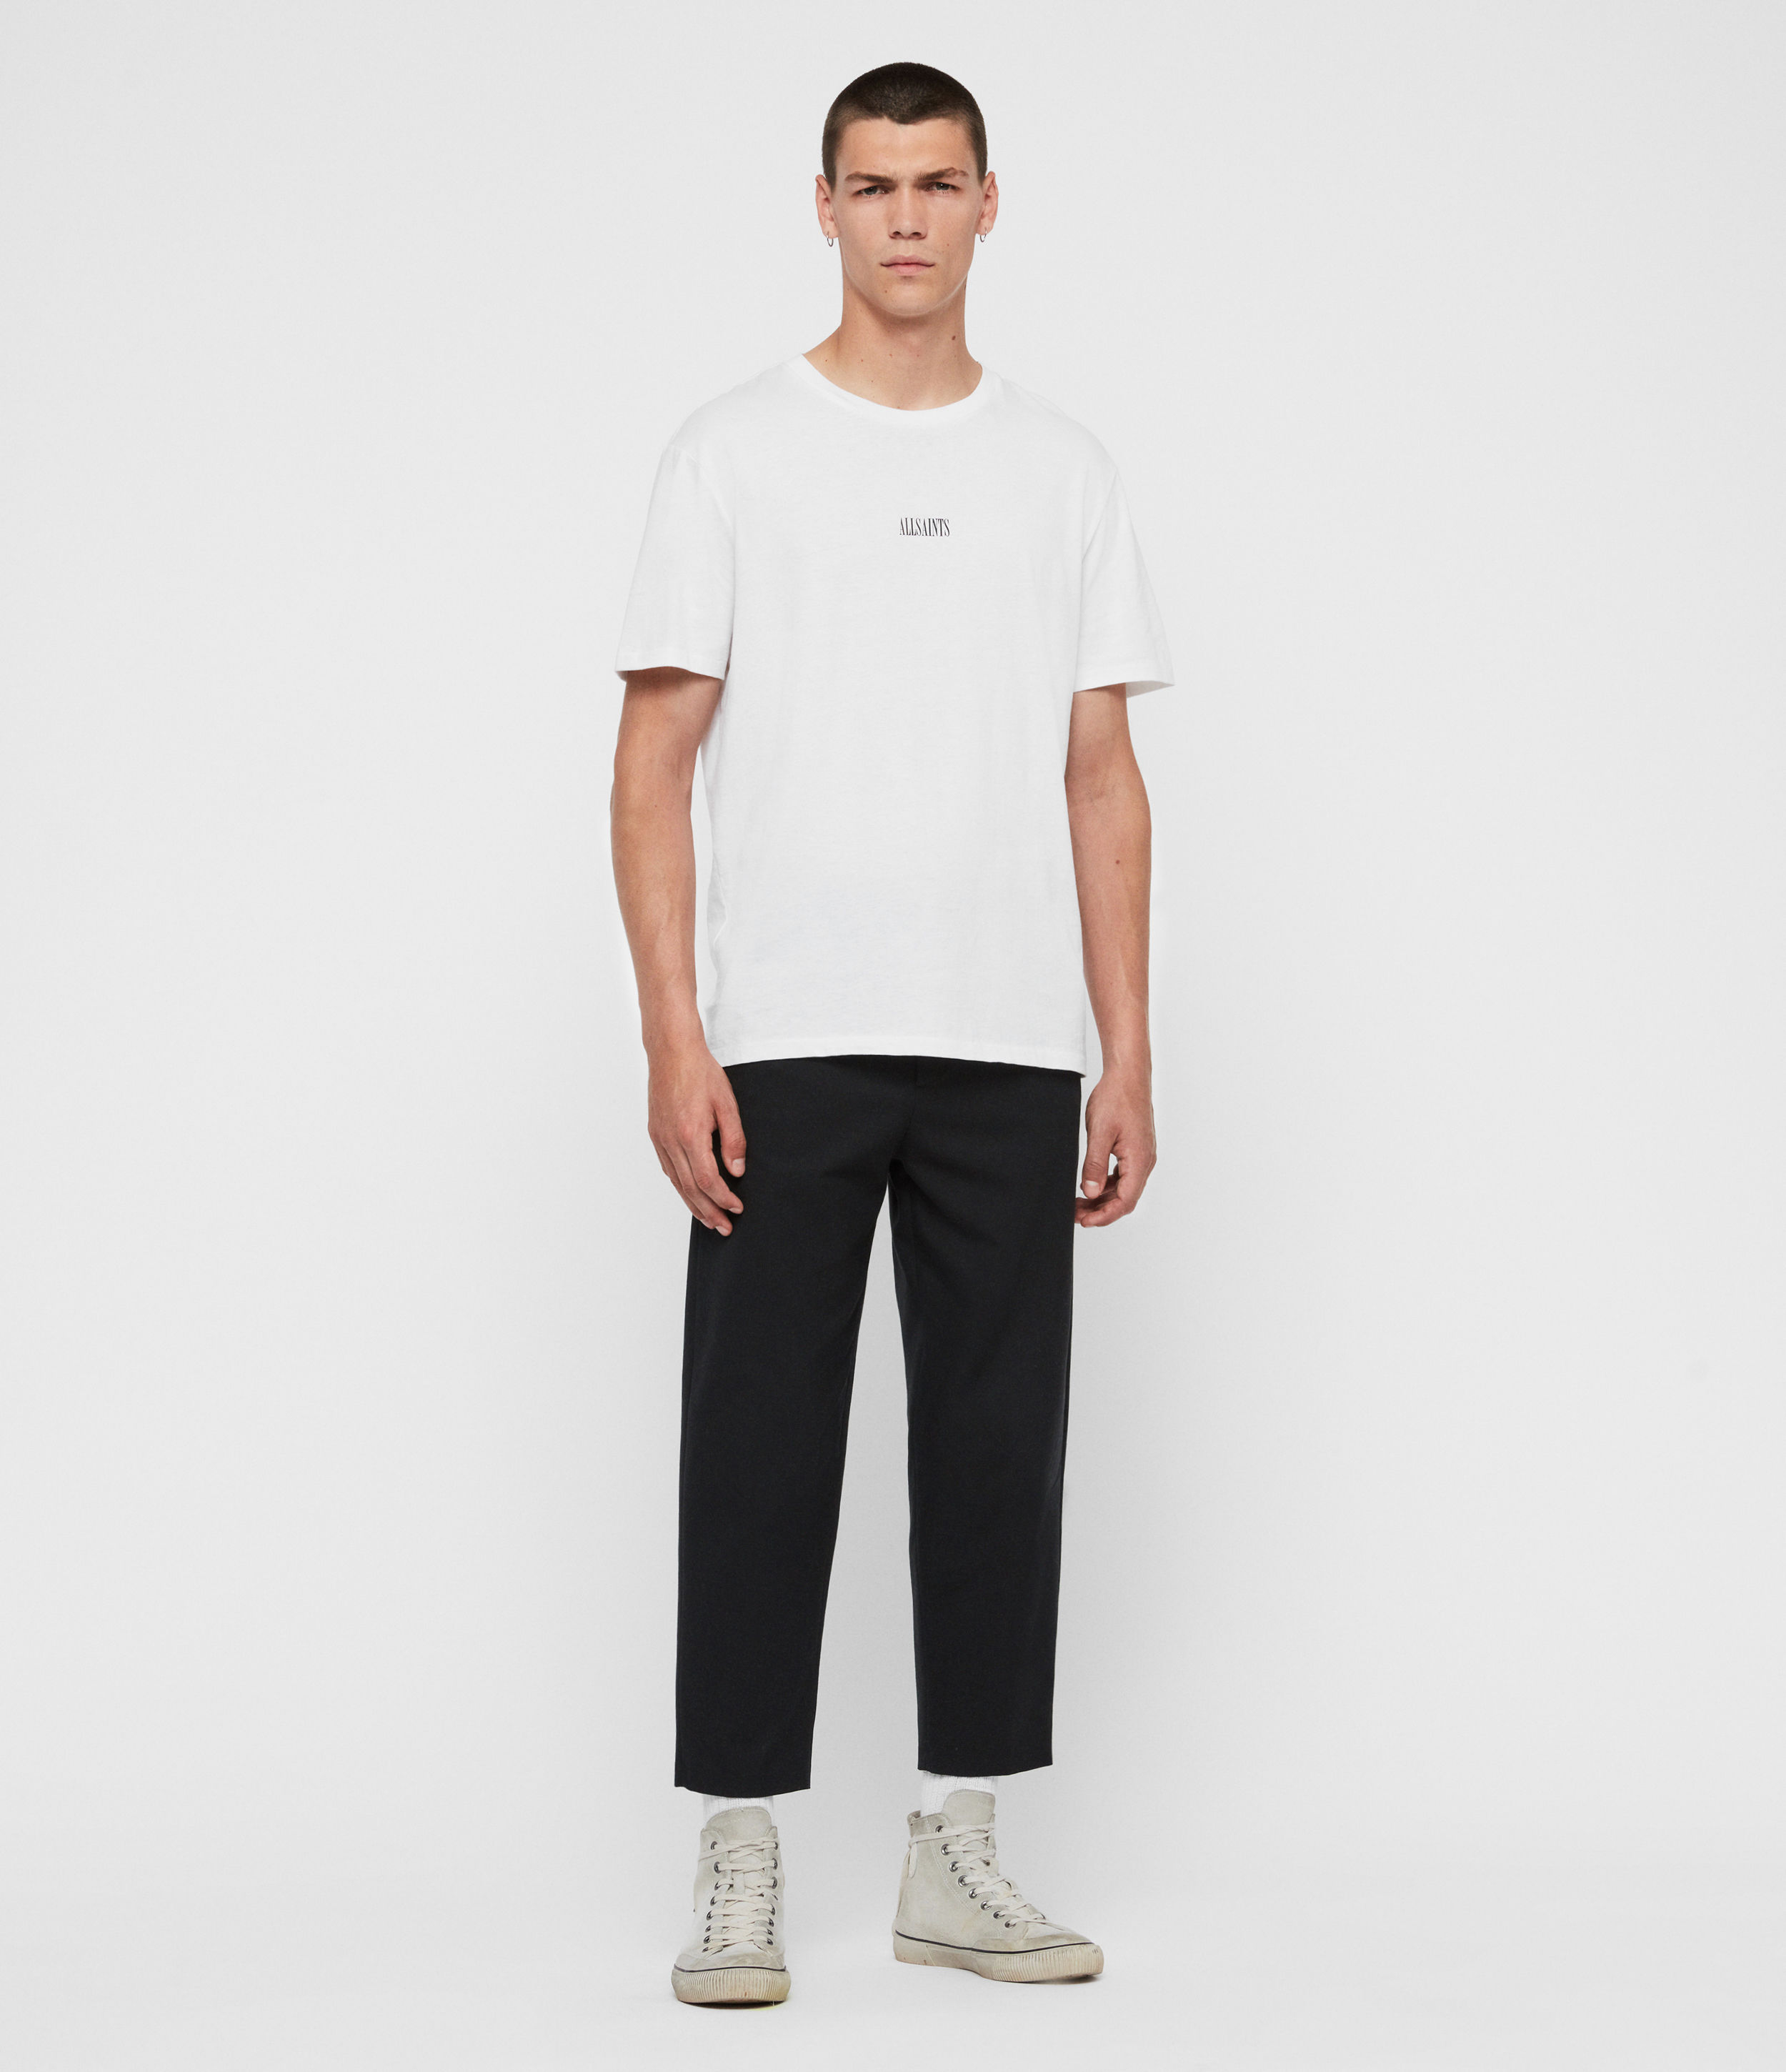 AllSaints State Crew T-Shirt